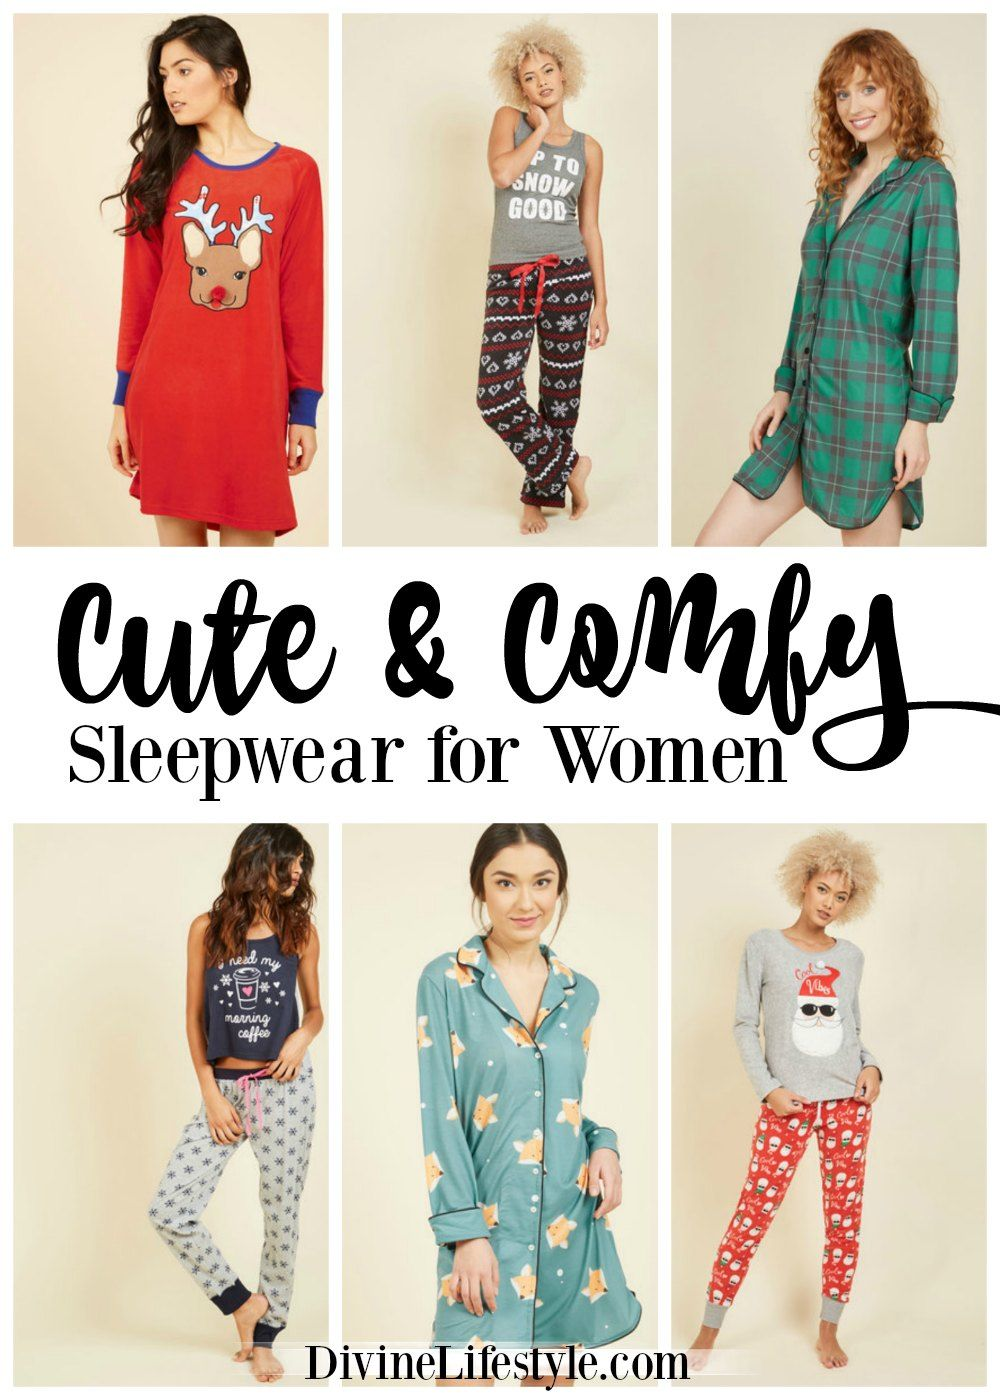 ever that lake carly prepster and starry them i pajamas they most night the re brand cannot enough makes having right comforter their recommend sale comfortable actually annual